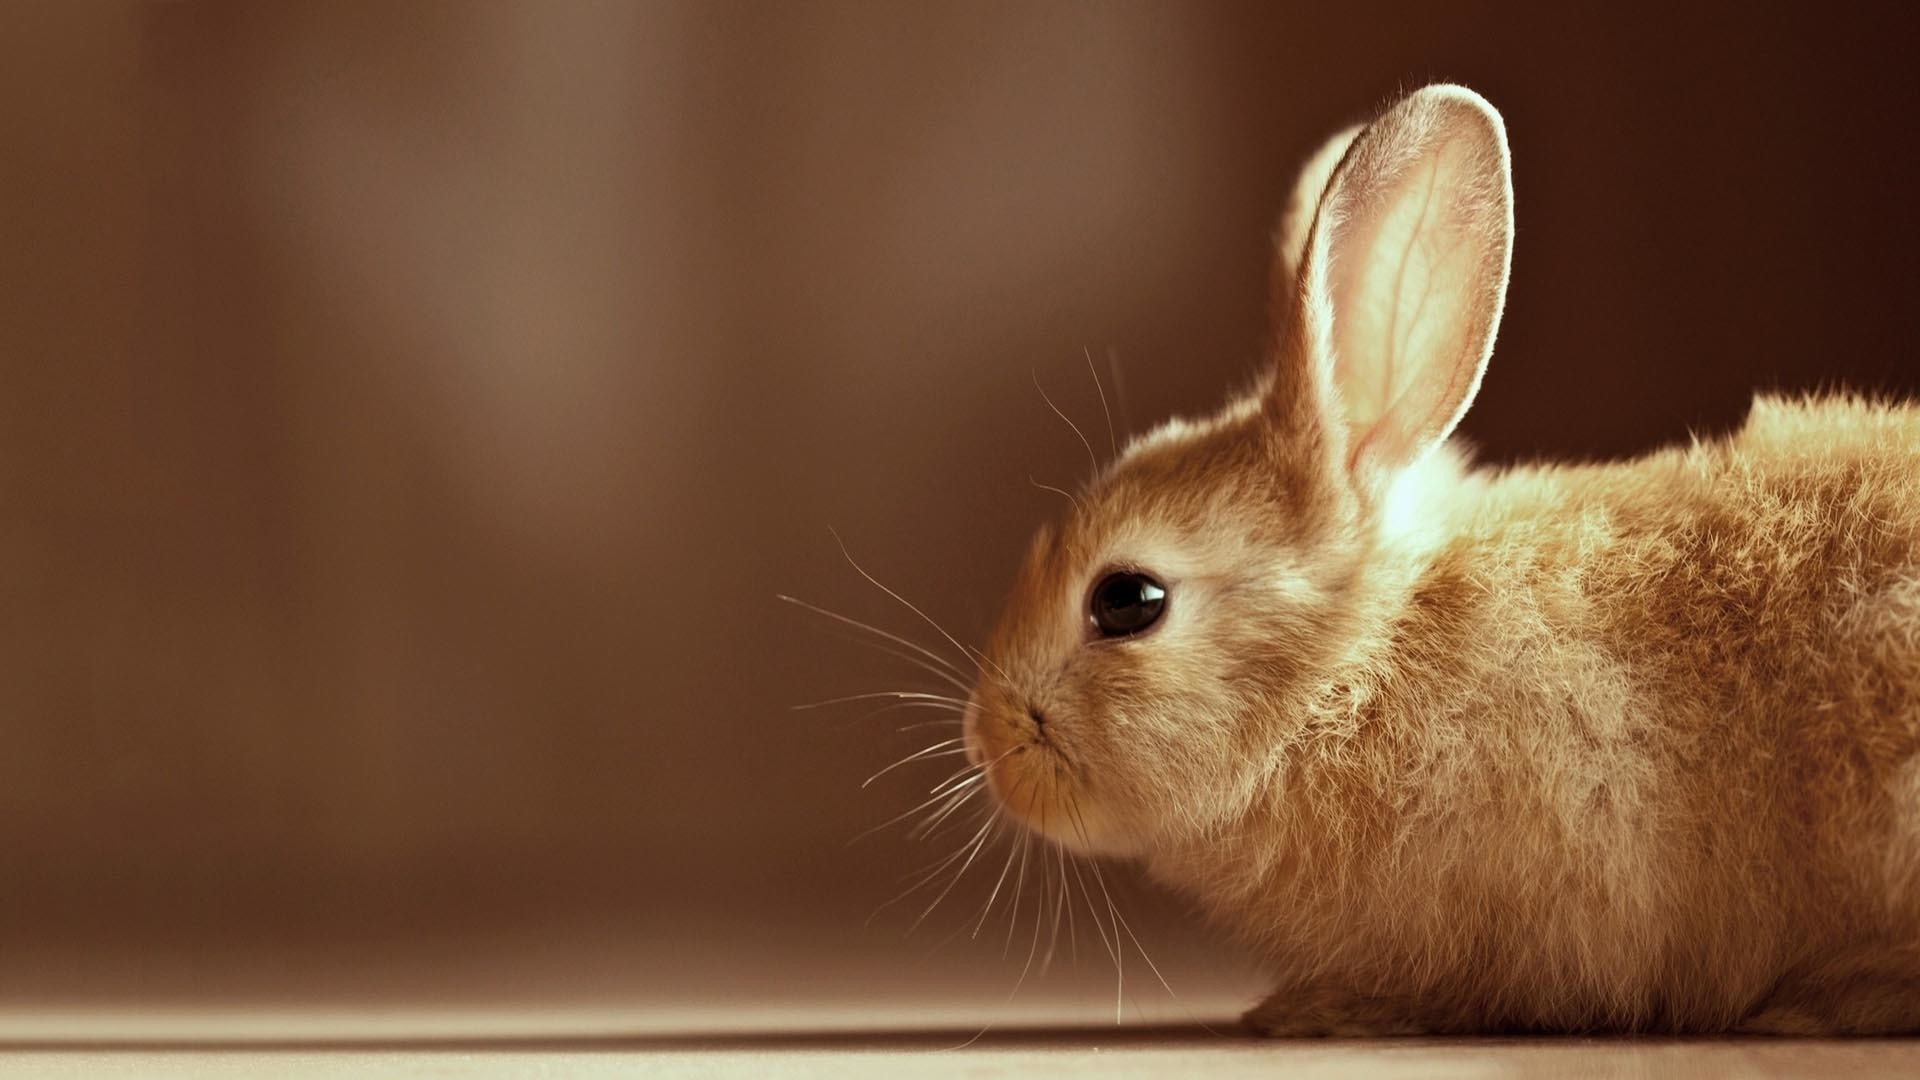 Wallpapers For > Cute Bunny Backgrounds